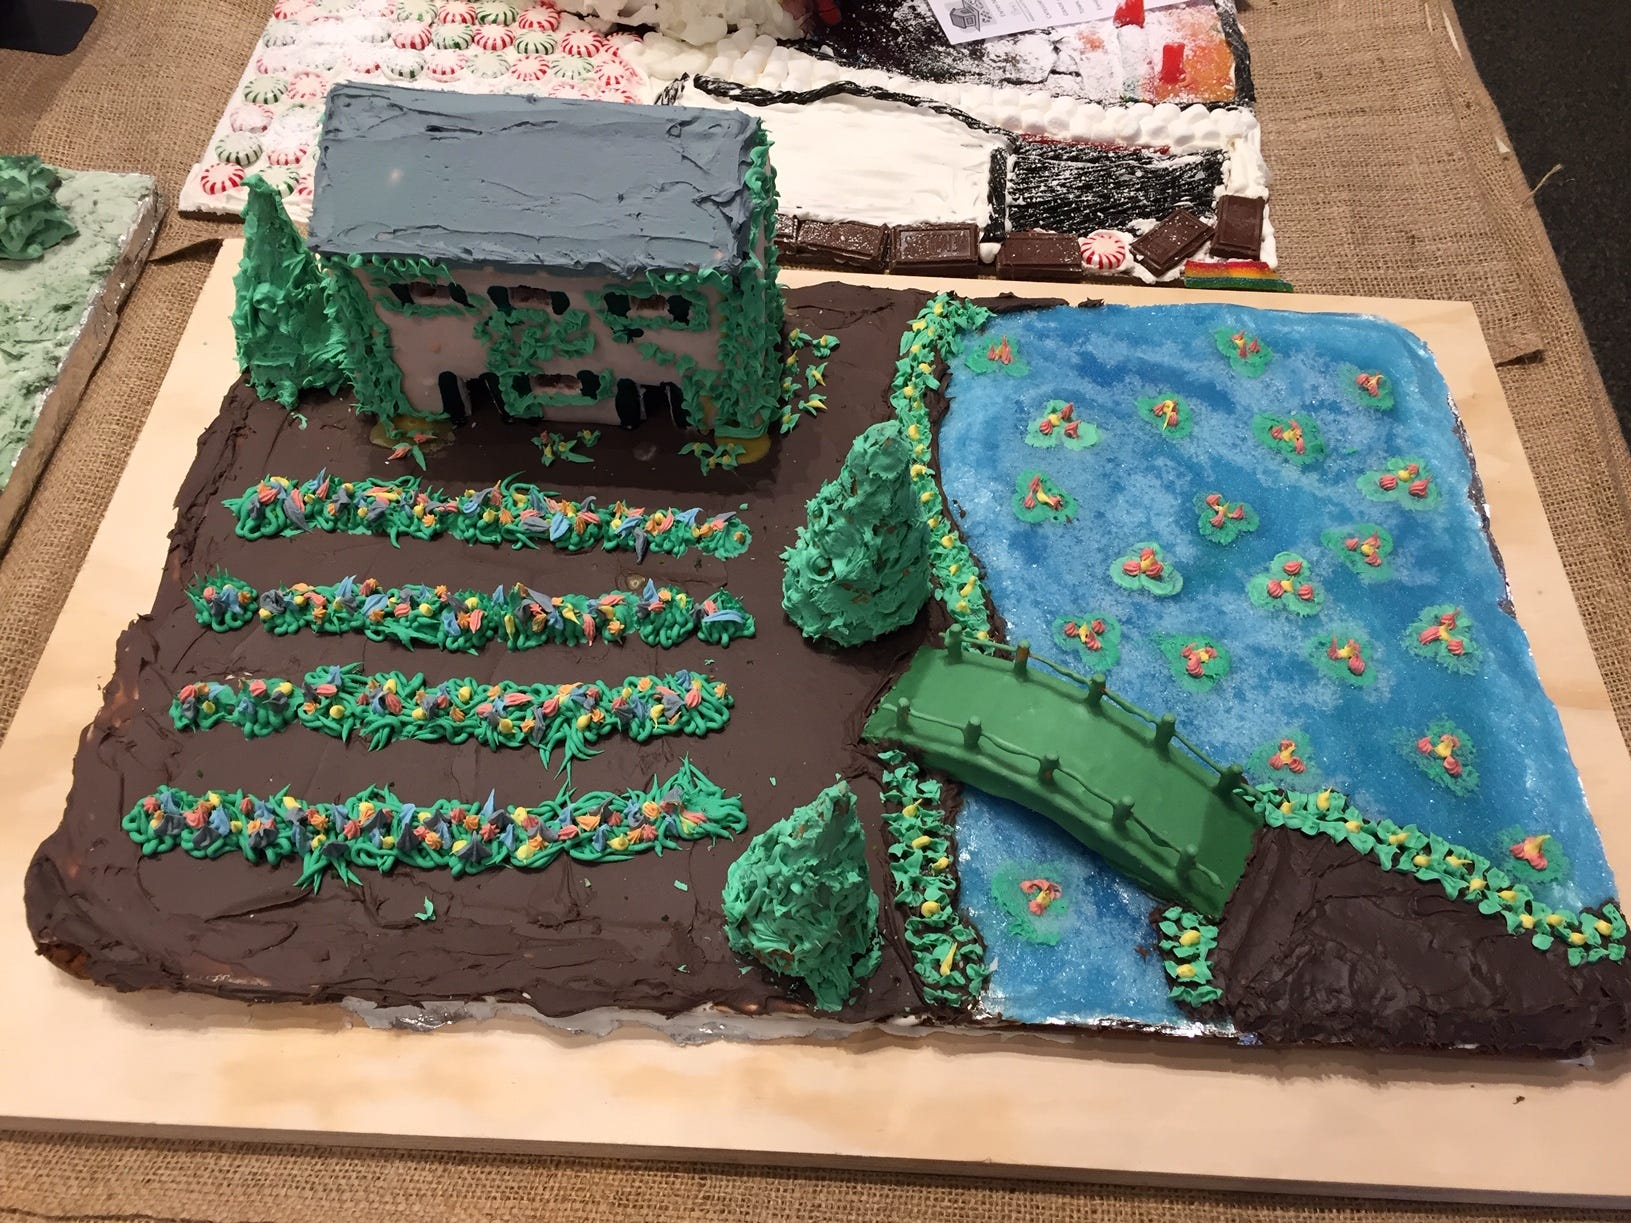 Monet's Garden by Benjamin Do, 11th grade, Mendham, at the 2018 Gingerbread Wonderland at the Frelinghuysen Arboretum.  Special Needs category.